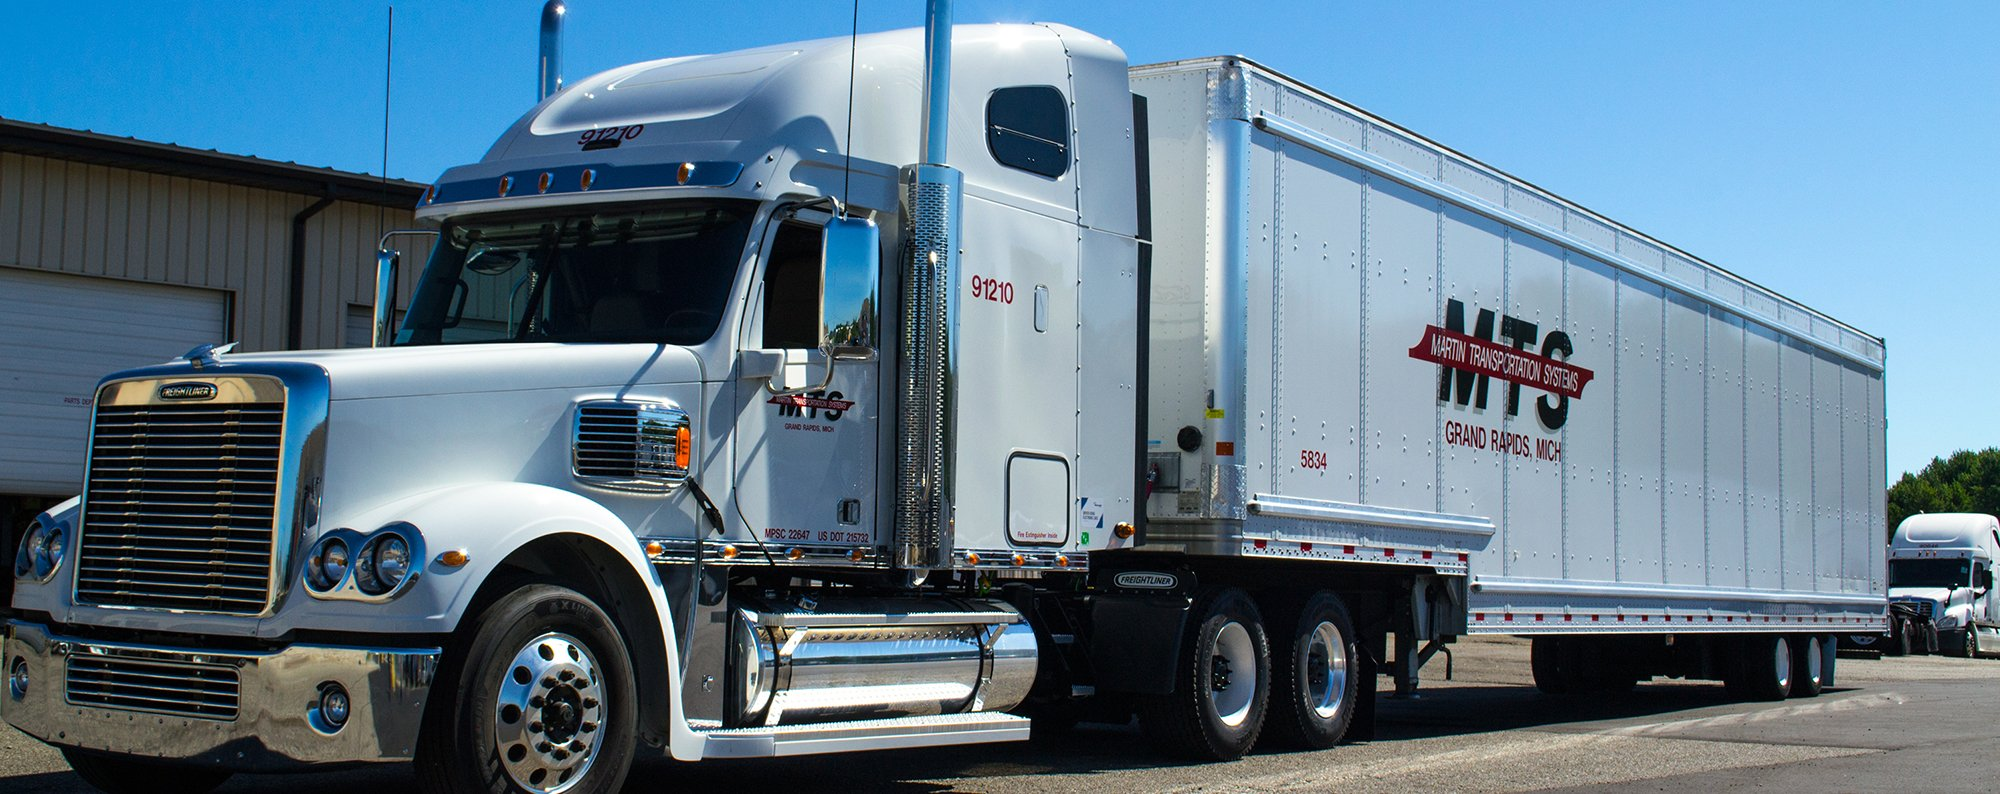 martin transportation systems quality used trucks and trailers for sale martin transportation systems quality